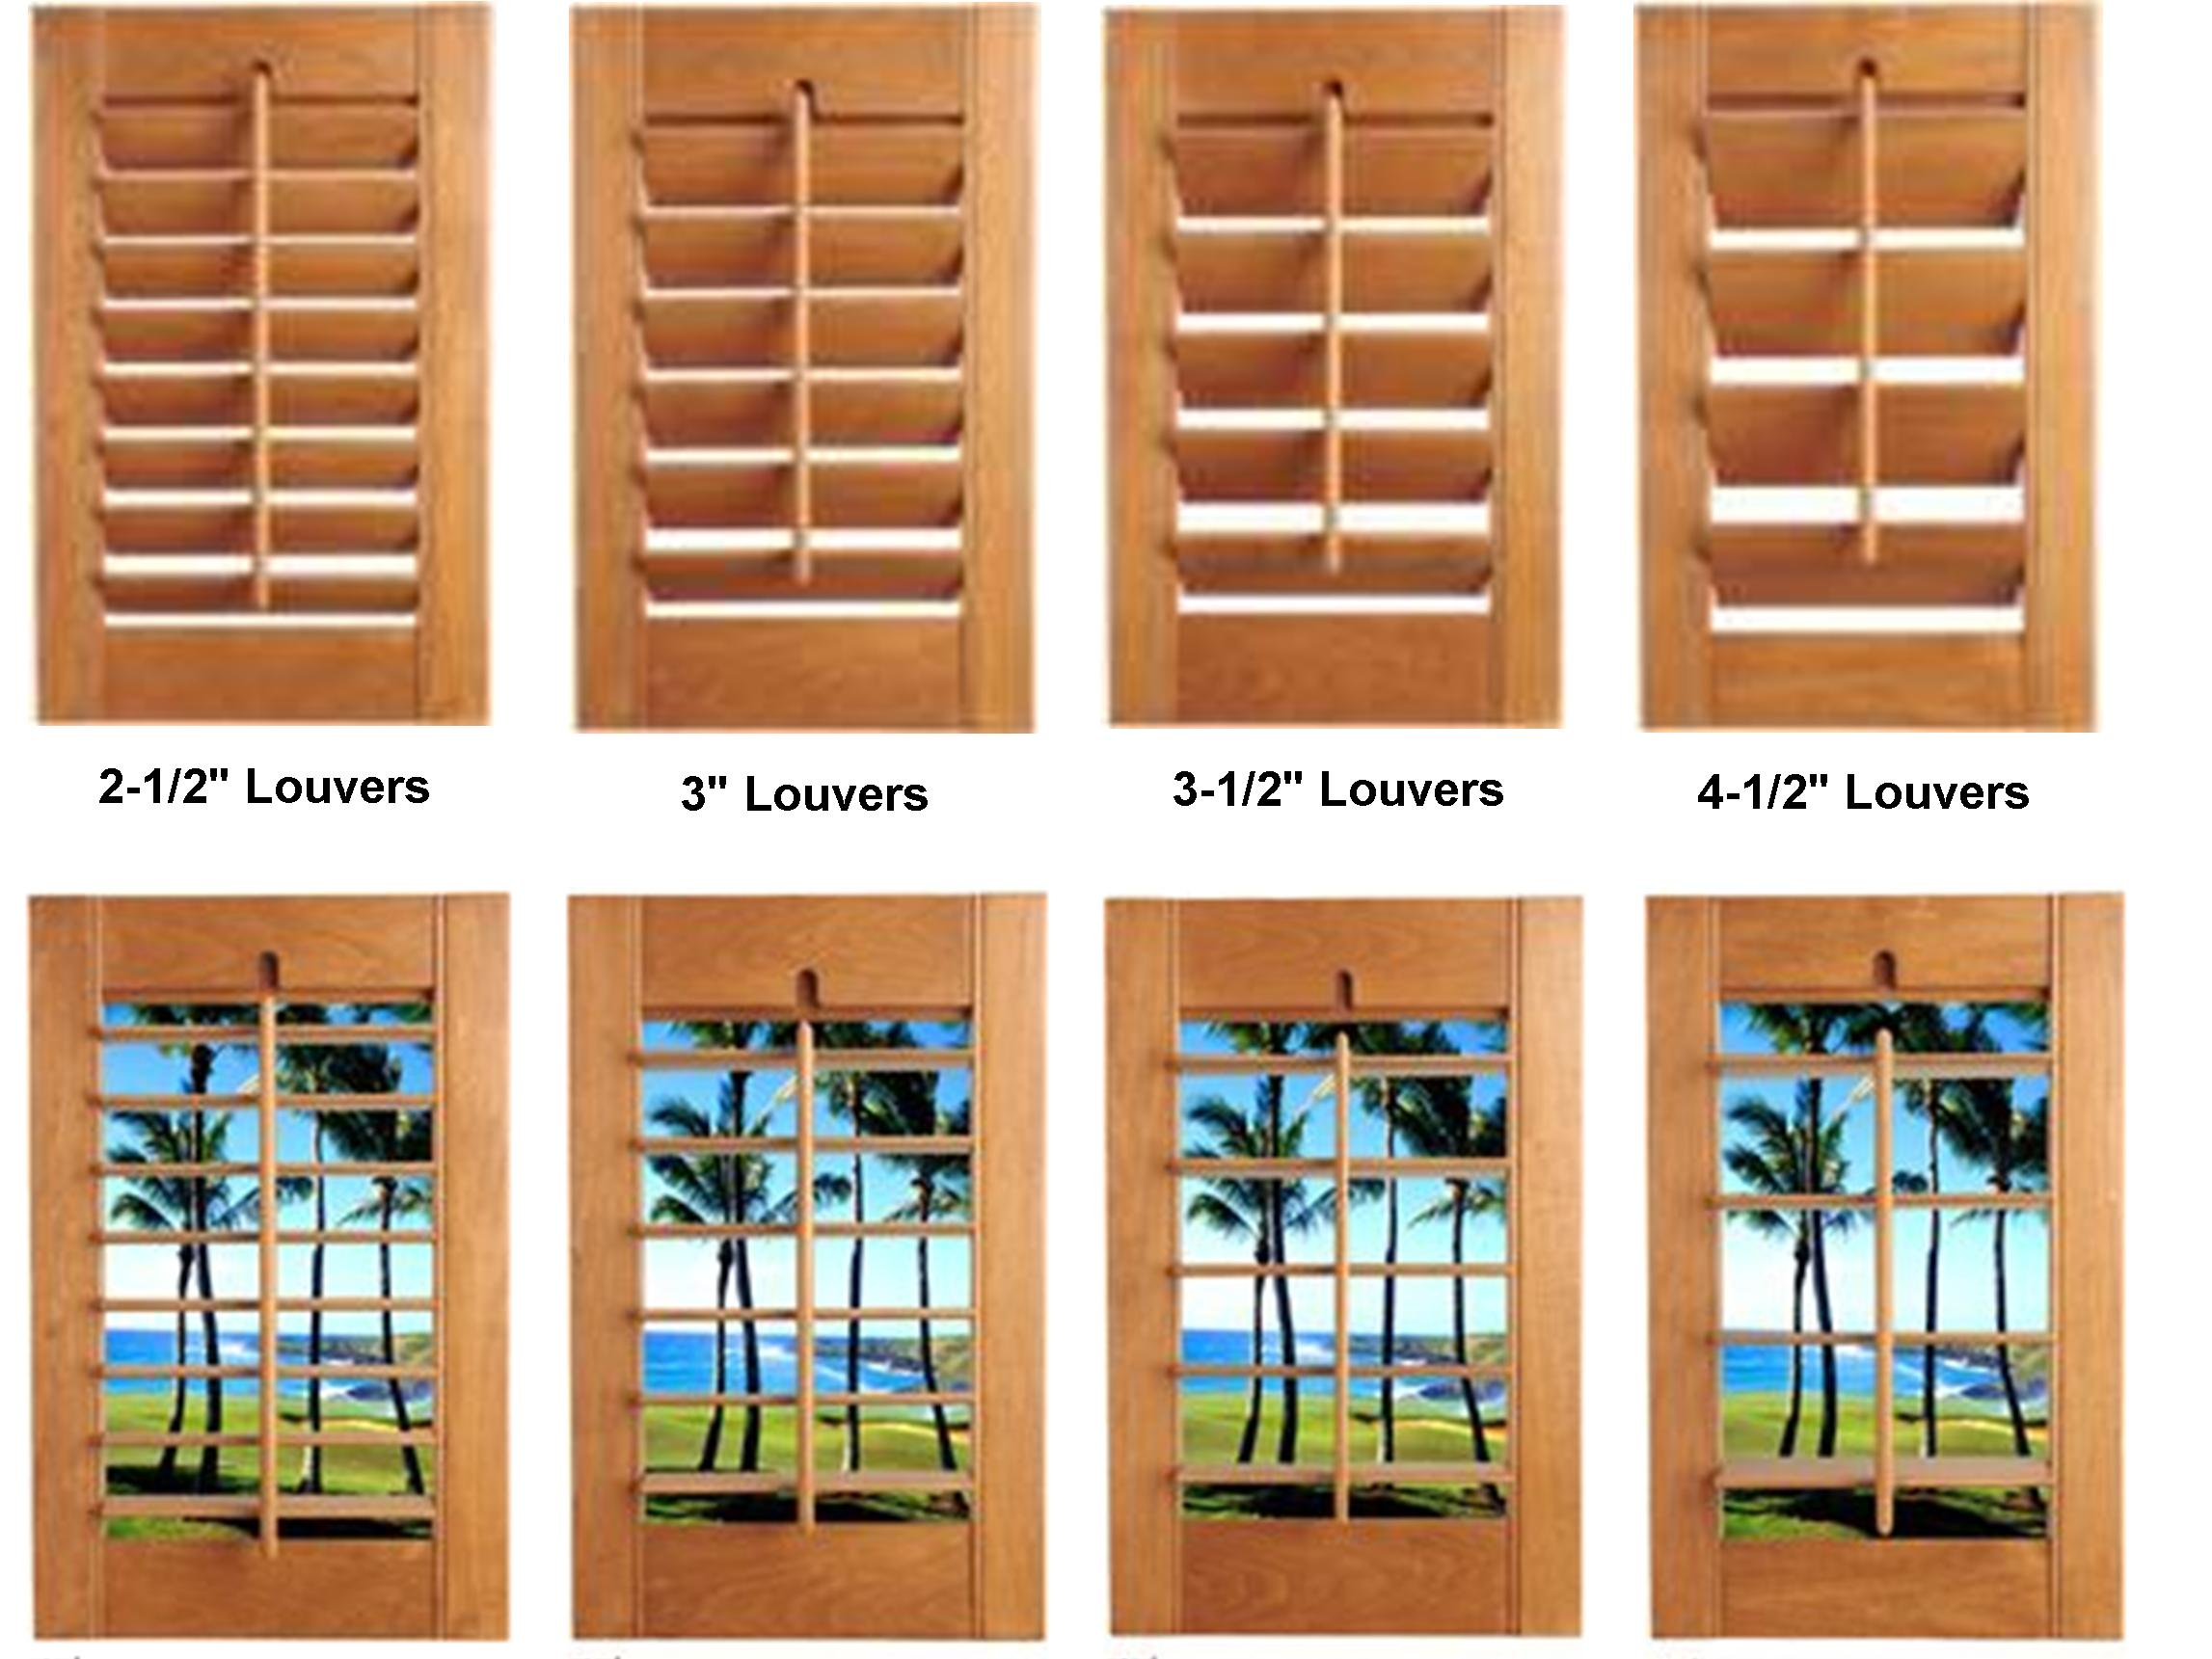 Shutters Gator Blinds 1 Offers Shutters Plantation